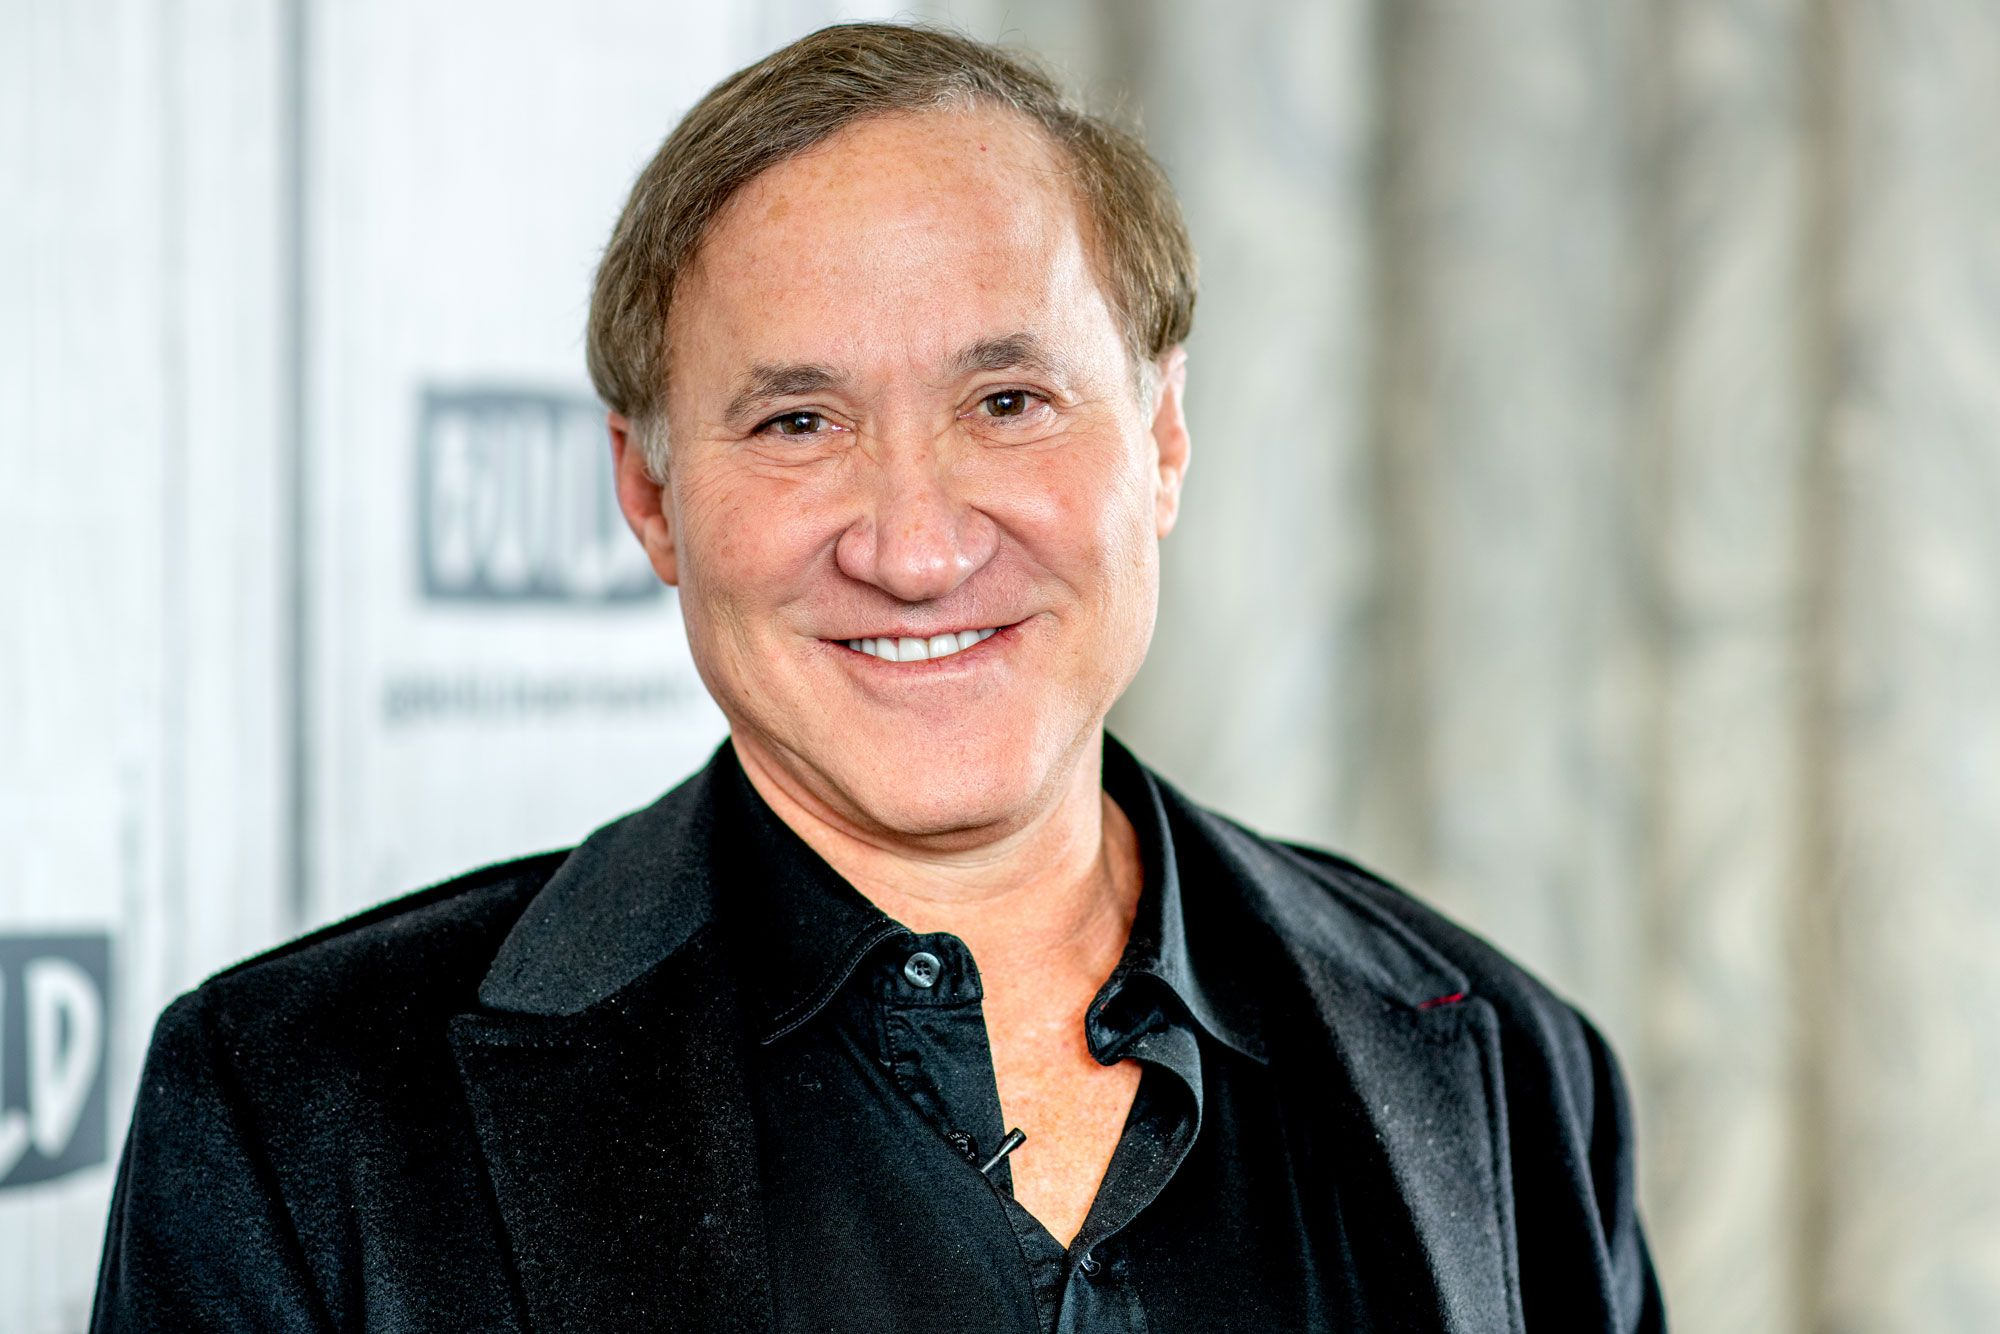 Terry Dubrow Highest Paid Doctors in The World